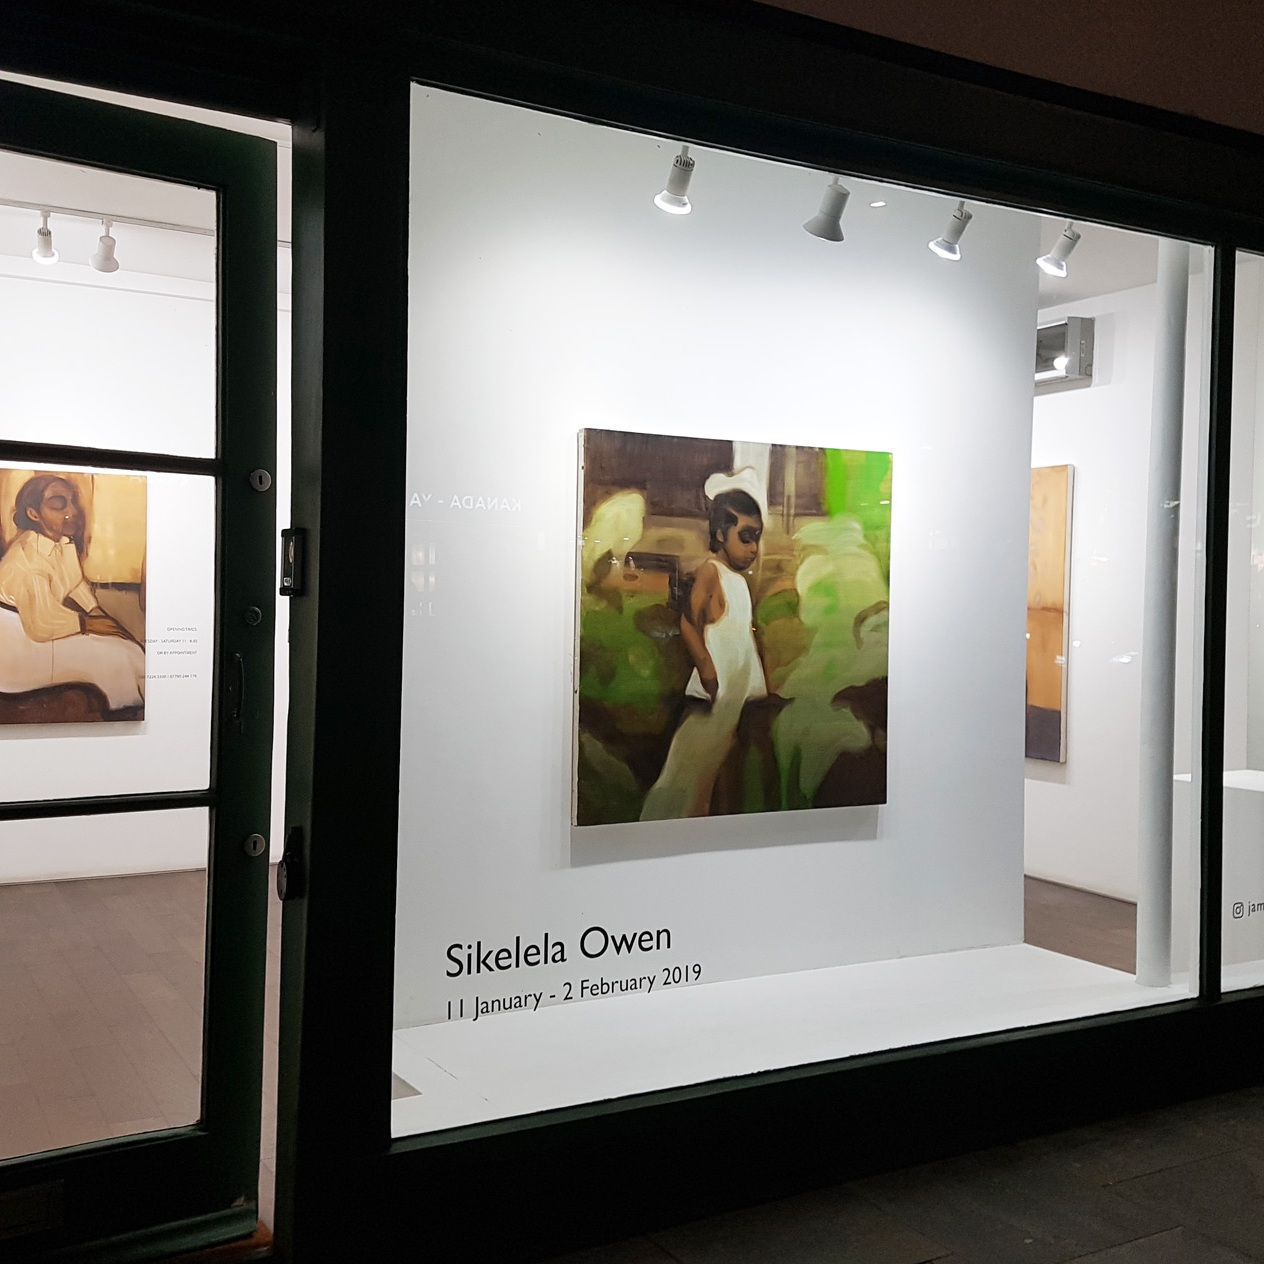 Sikelela Owen - Solo Exhibition at James Freeman January 2019 click for installation views and images of artworks